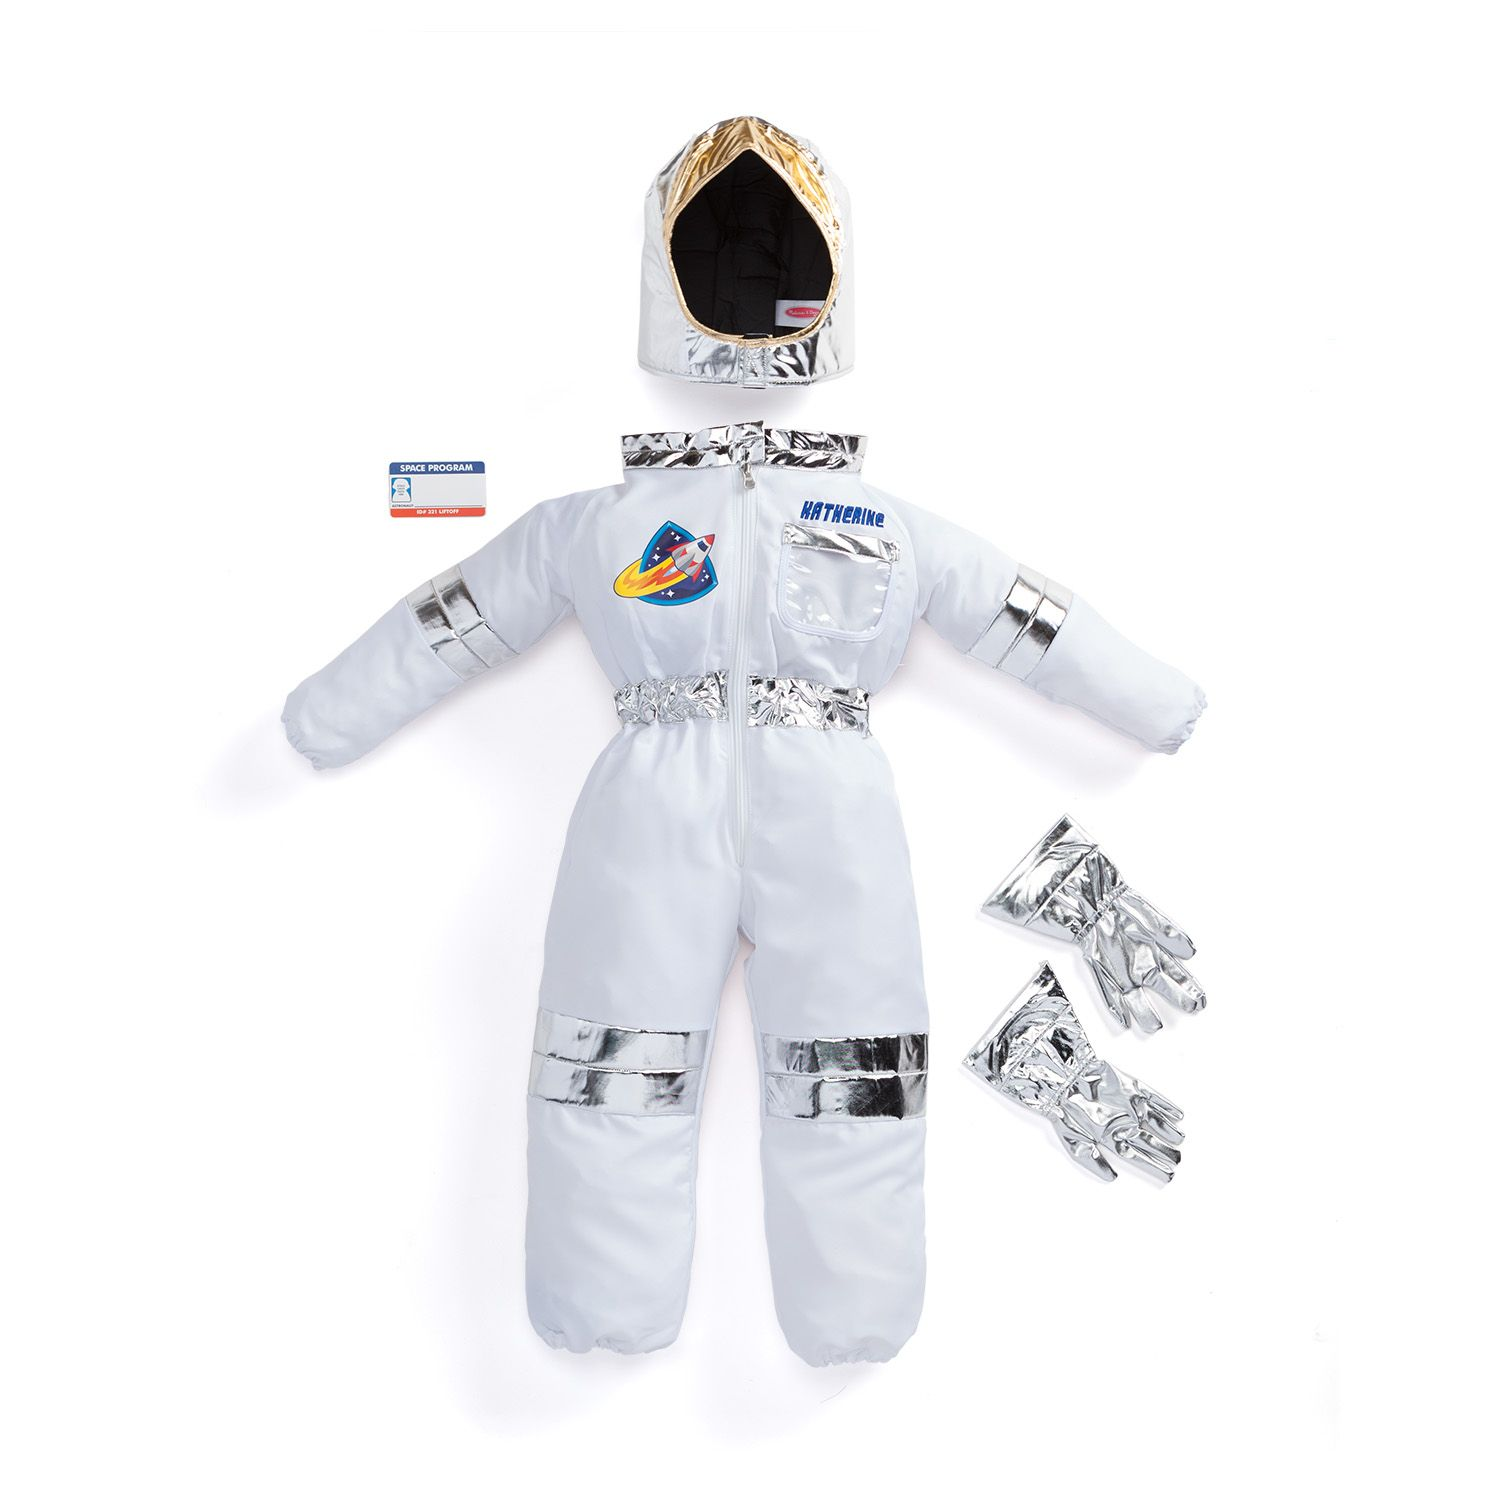 Get ready for out of this world fun with this astronaut costume